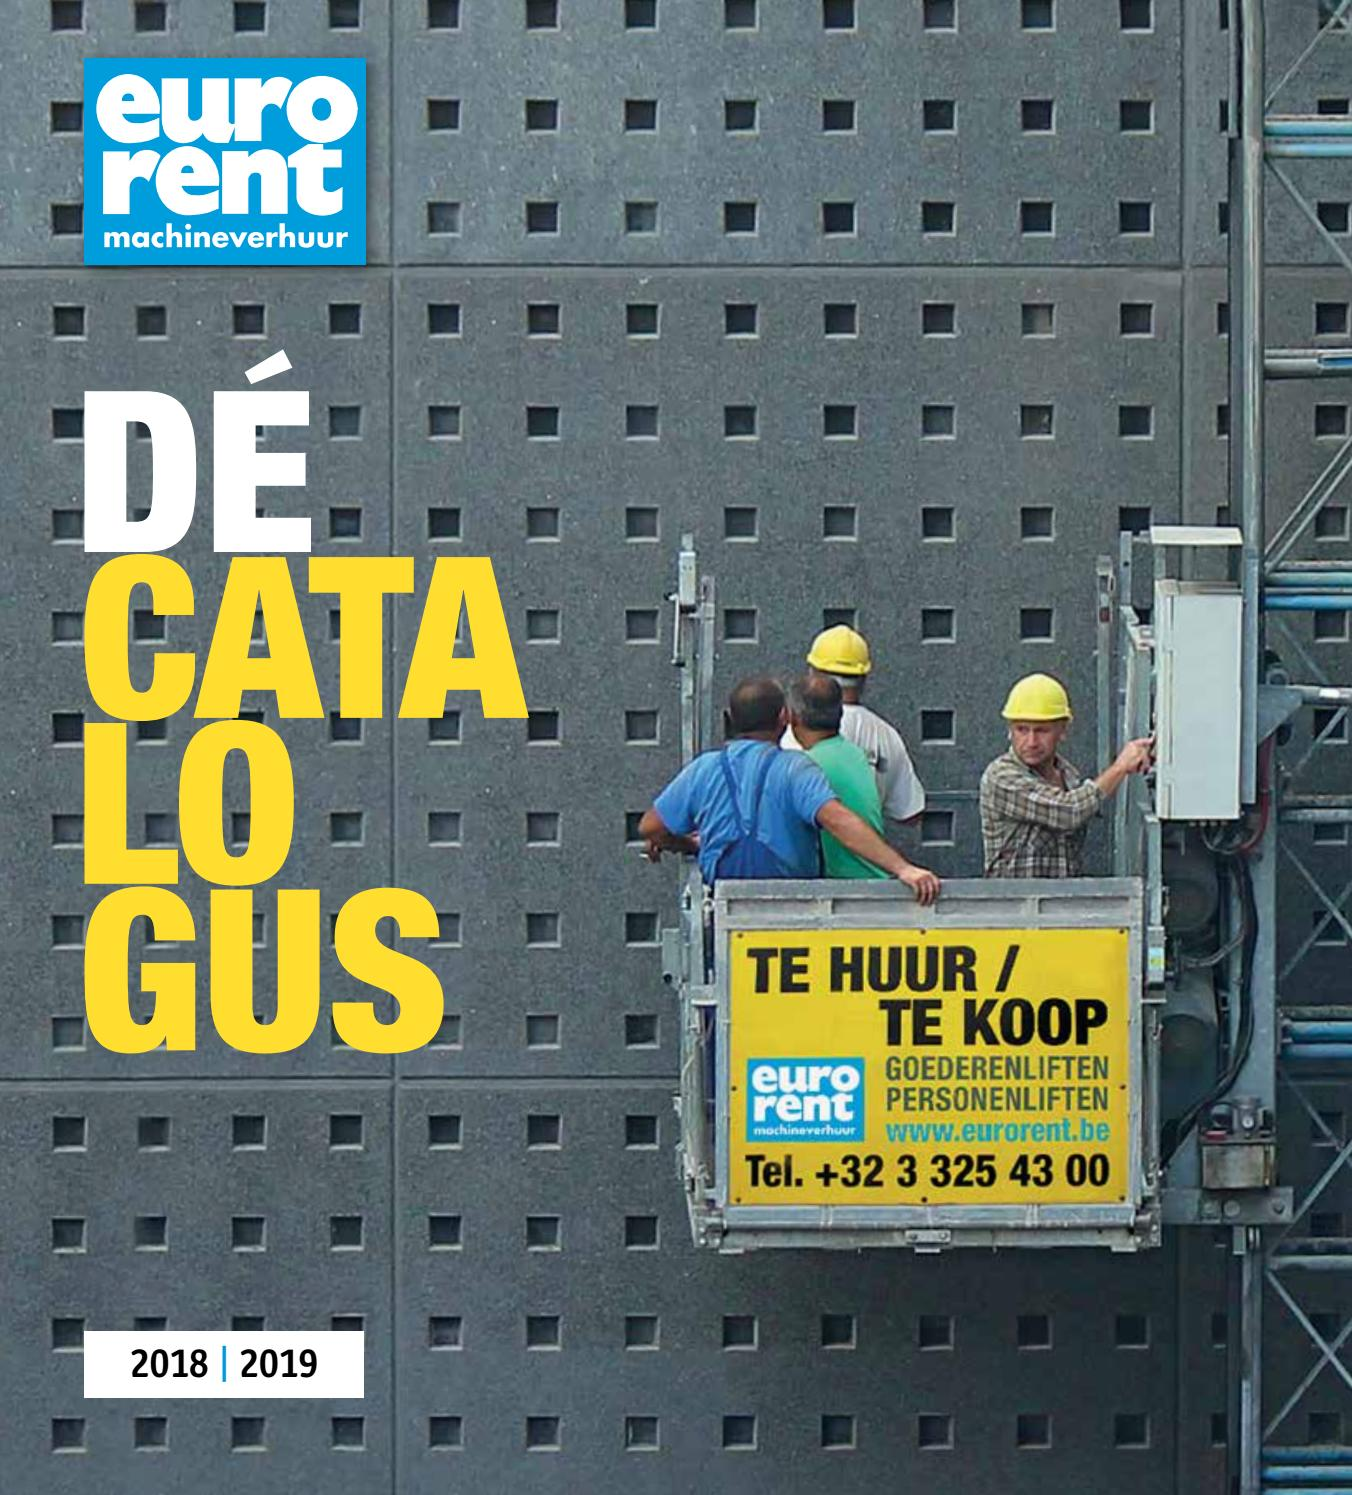 Metaaldetector Huren Euro Rent Huurcatalogus 2018 2019 By Euro Rent Issuu